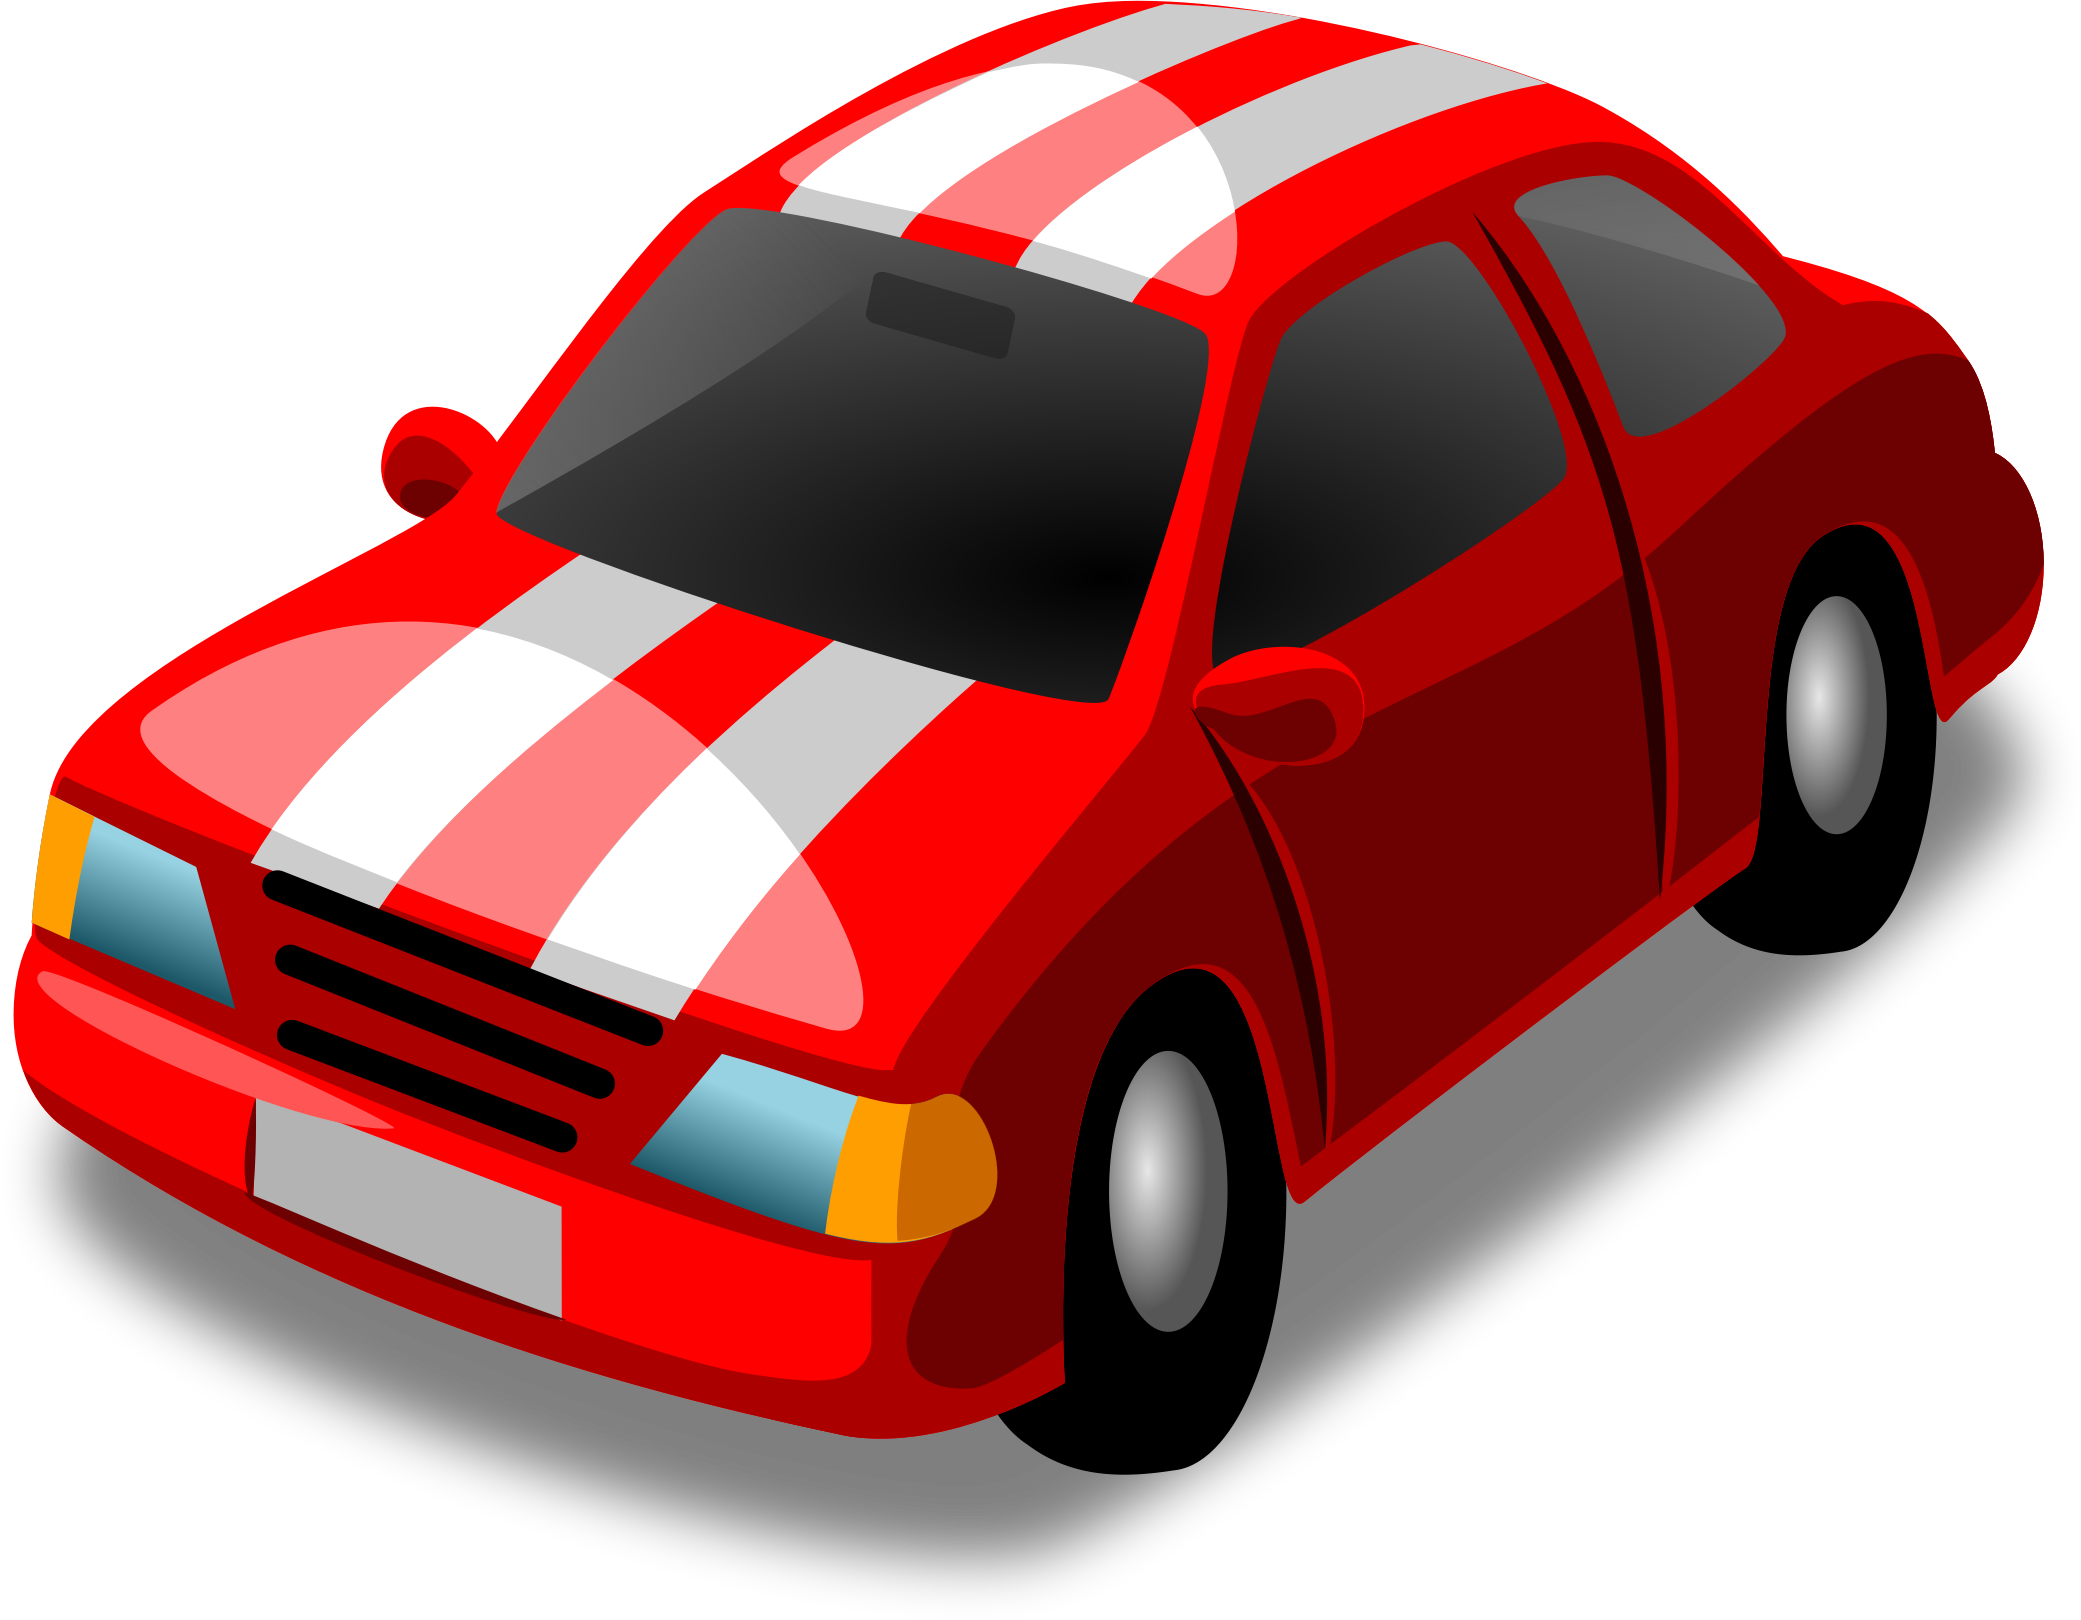 Red Racing Car Clipart Little Red Racing Car